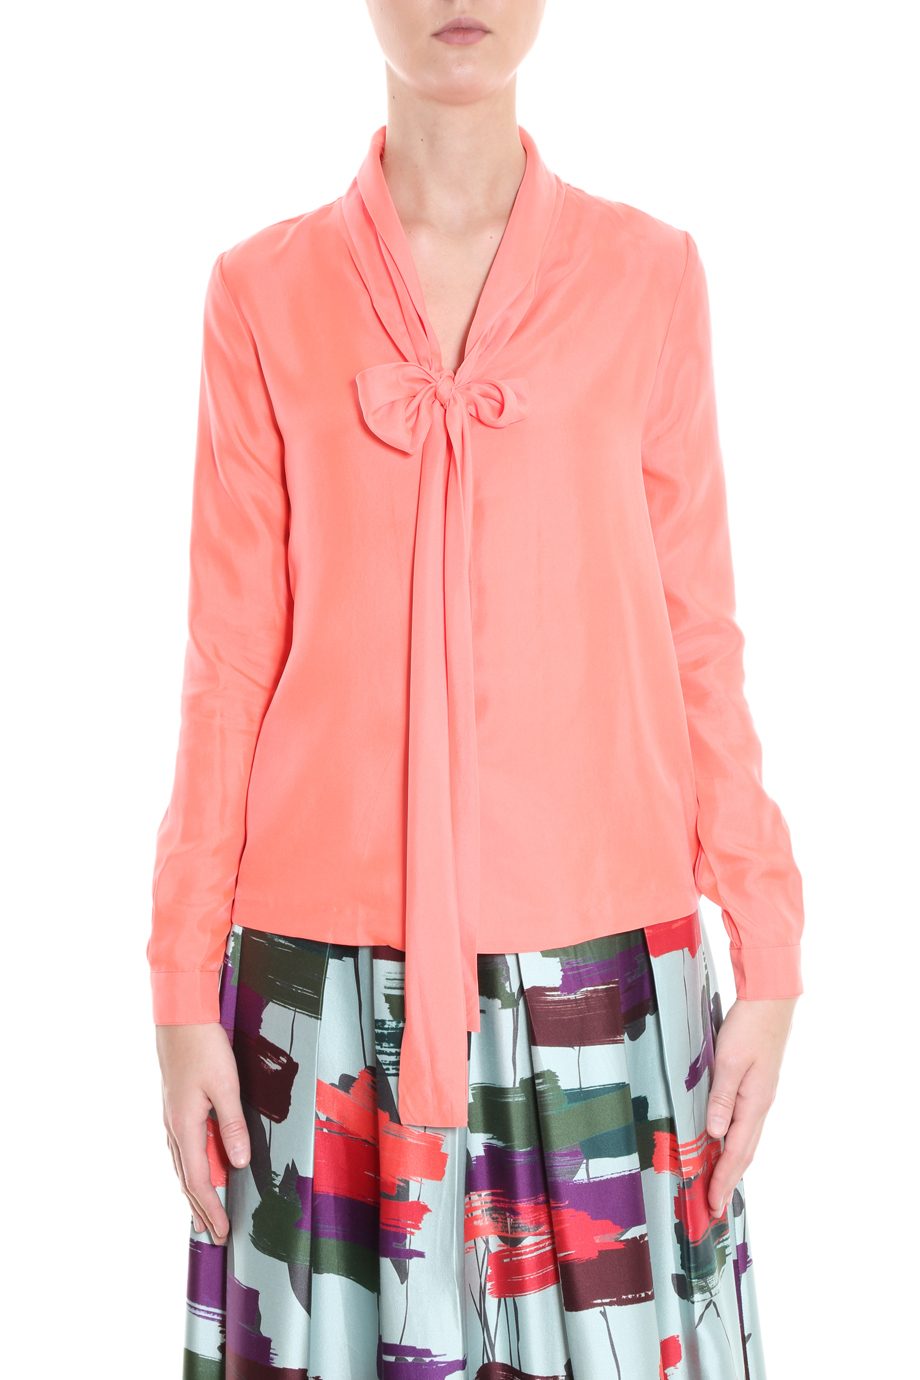 ed1a290dd17e6d Lyst - Raoul Tie Neck Blouse in Pink